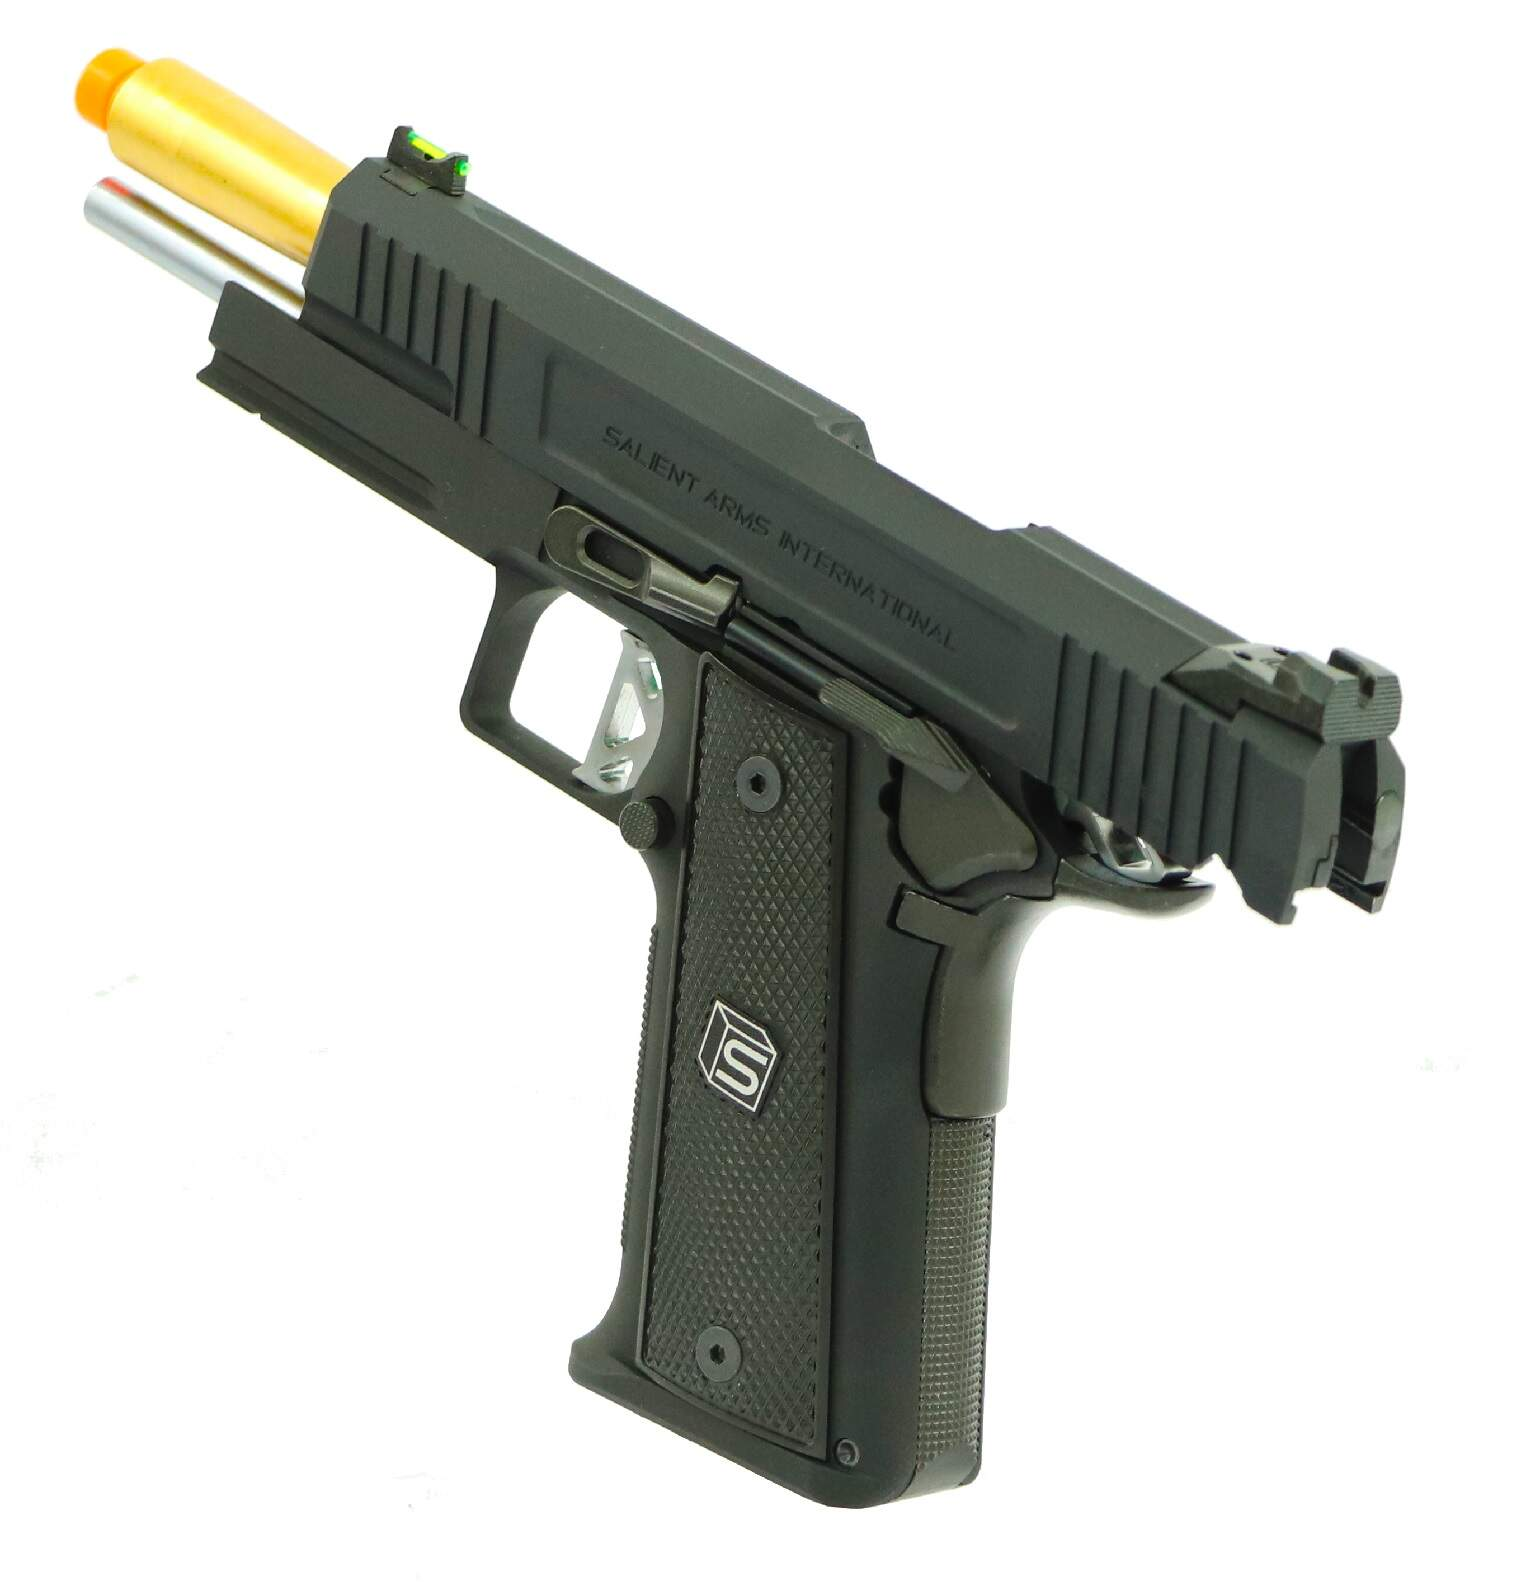 PISTOLA AIRSOFT EMG SALIENT ARMS DS5.1 GREEN GAS